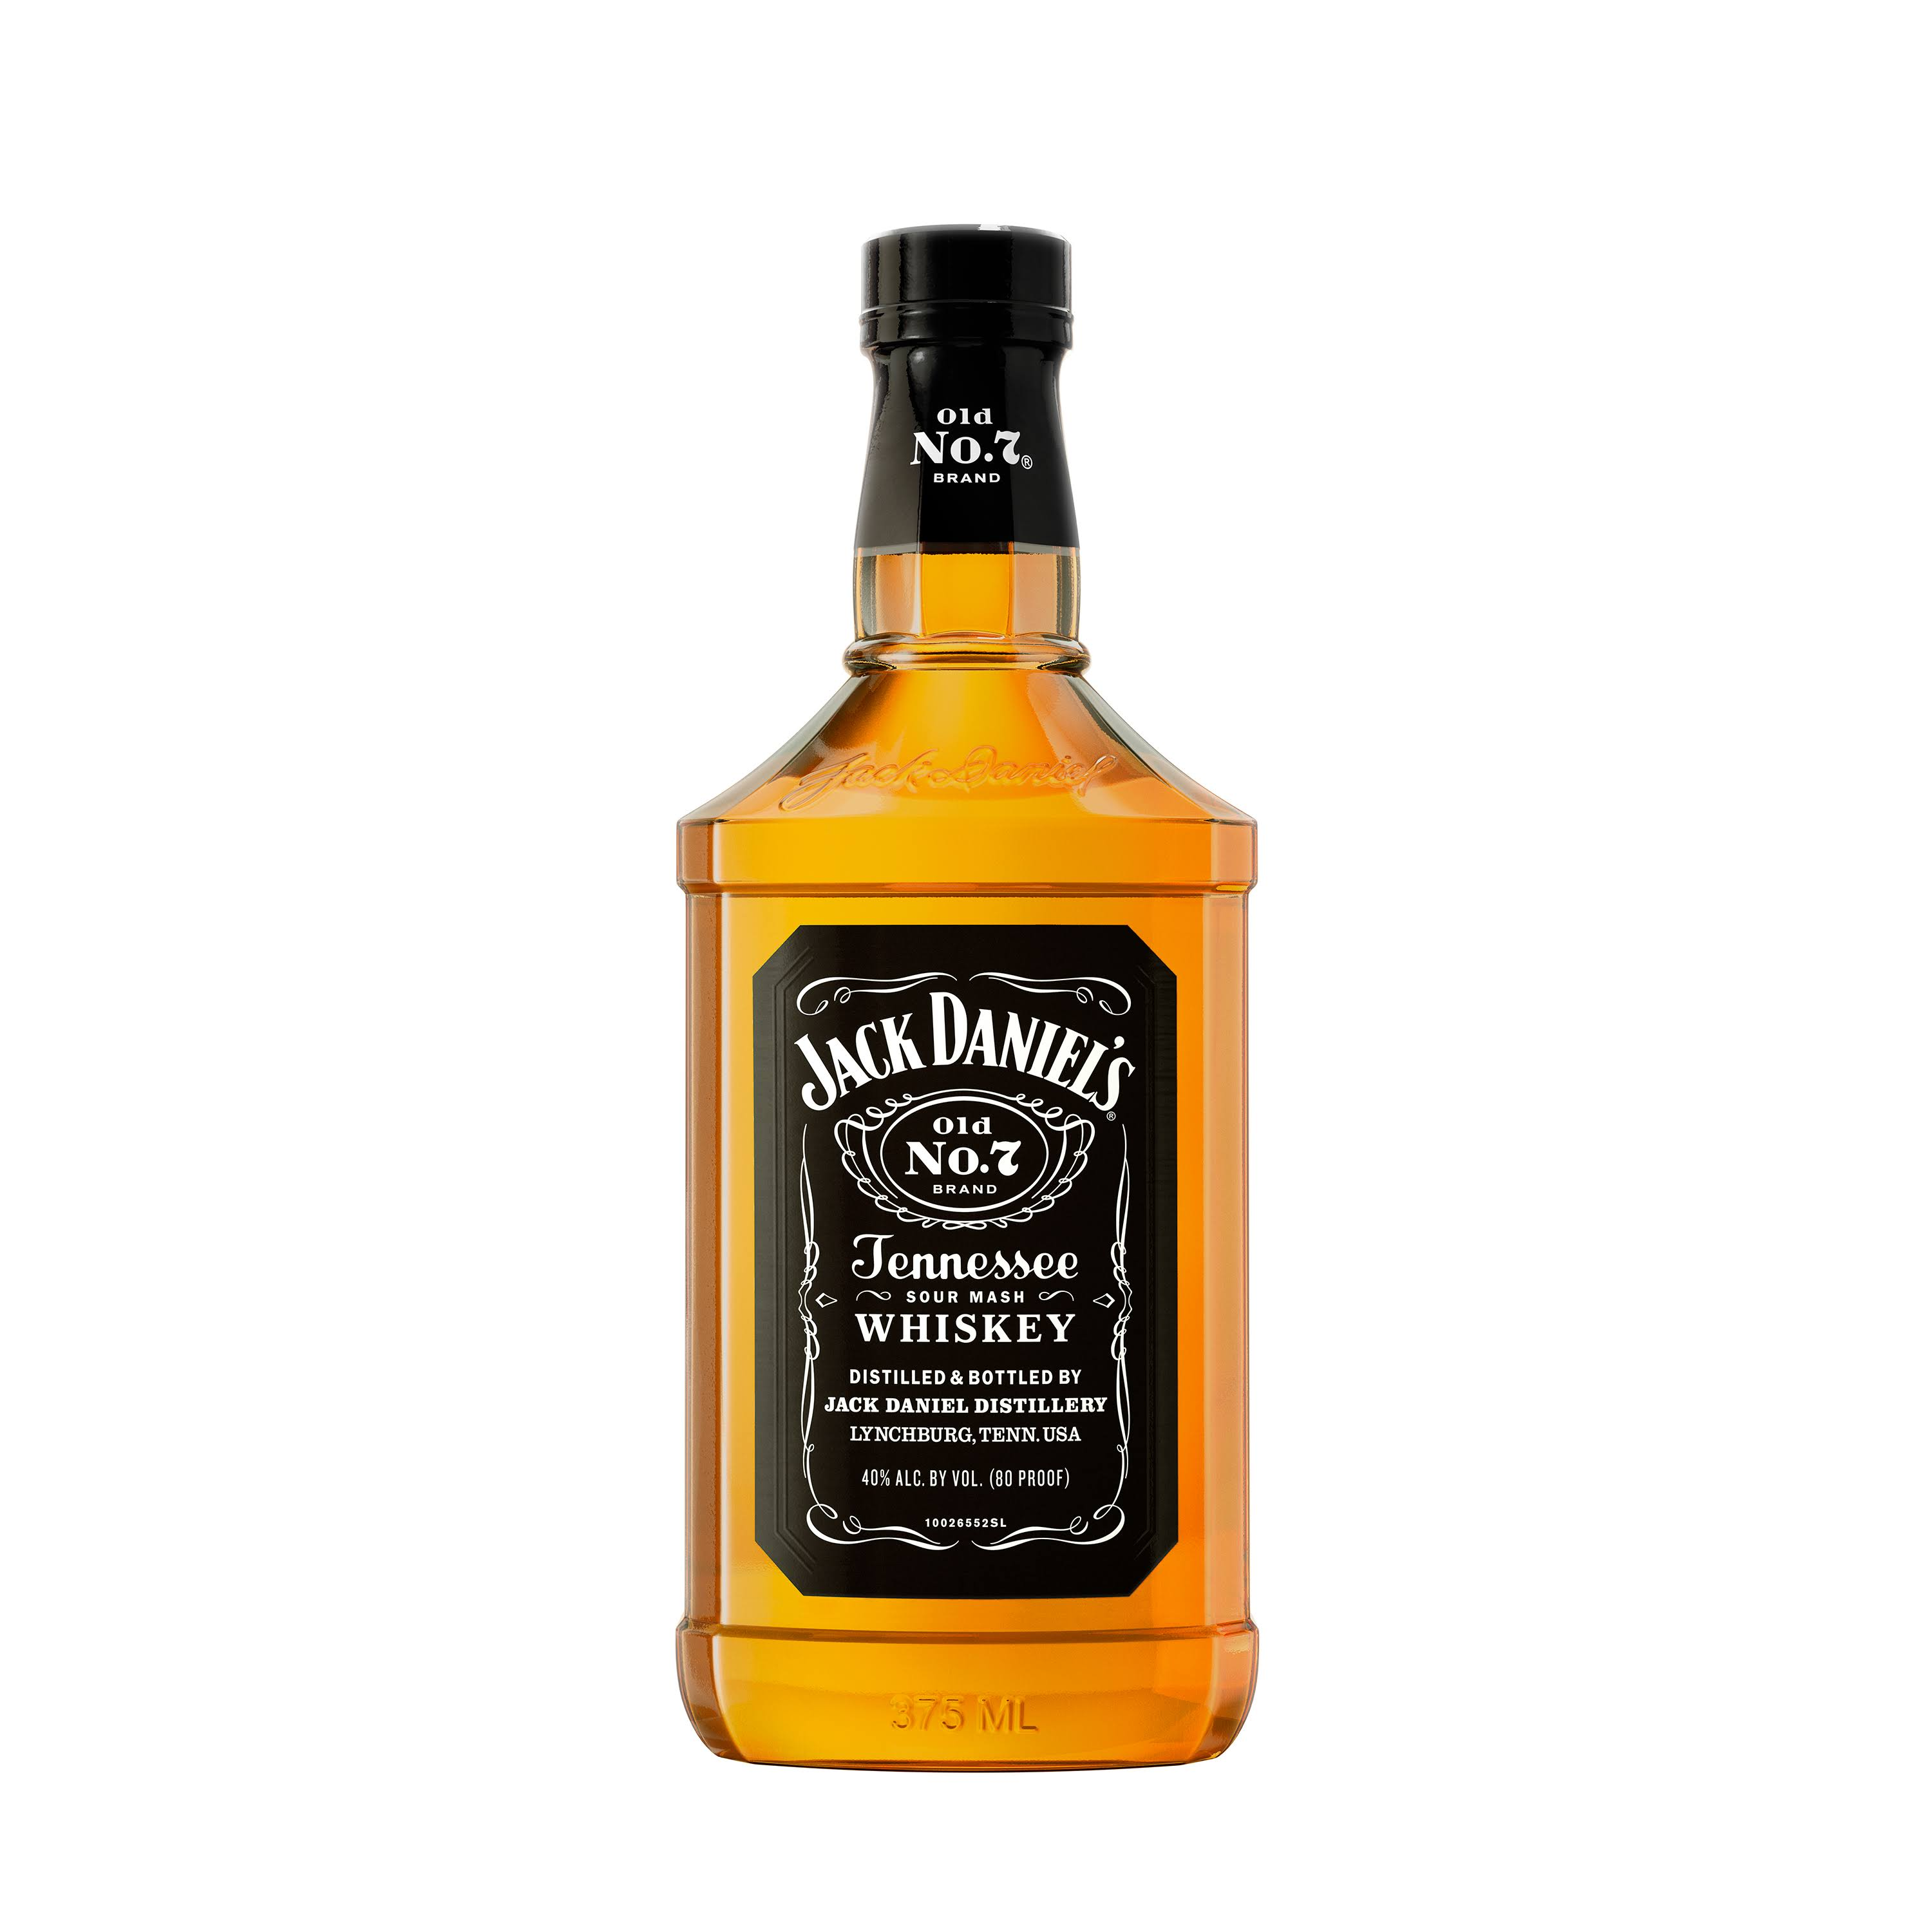 Jack Daniels Old No. 7 Whiskey, Tennessee Whiskey - 375 ml